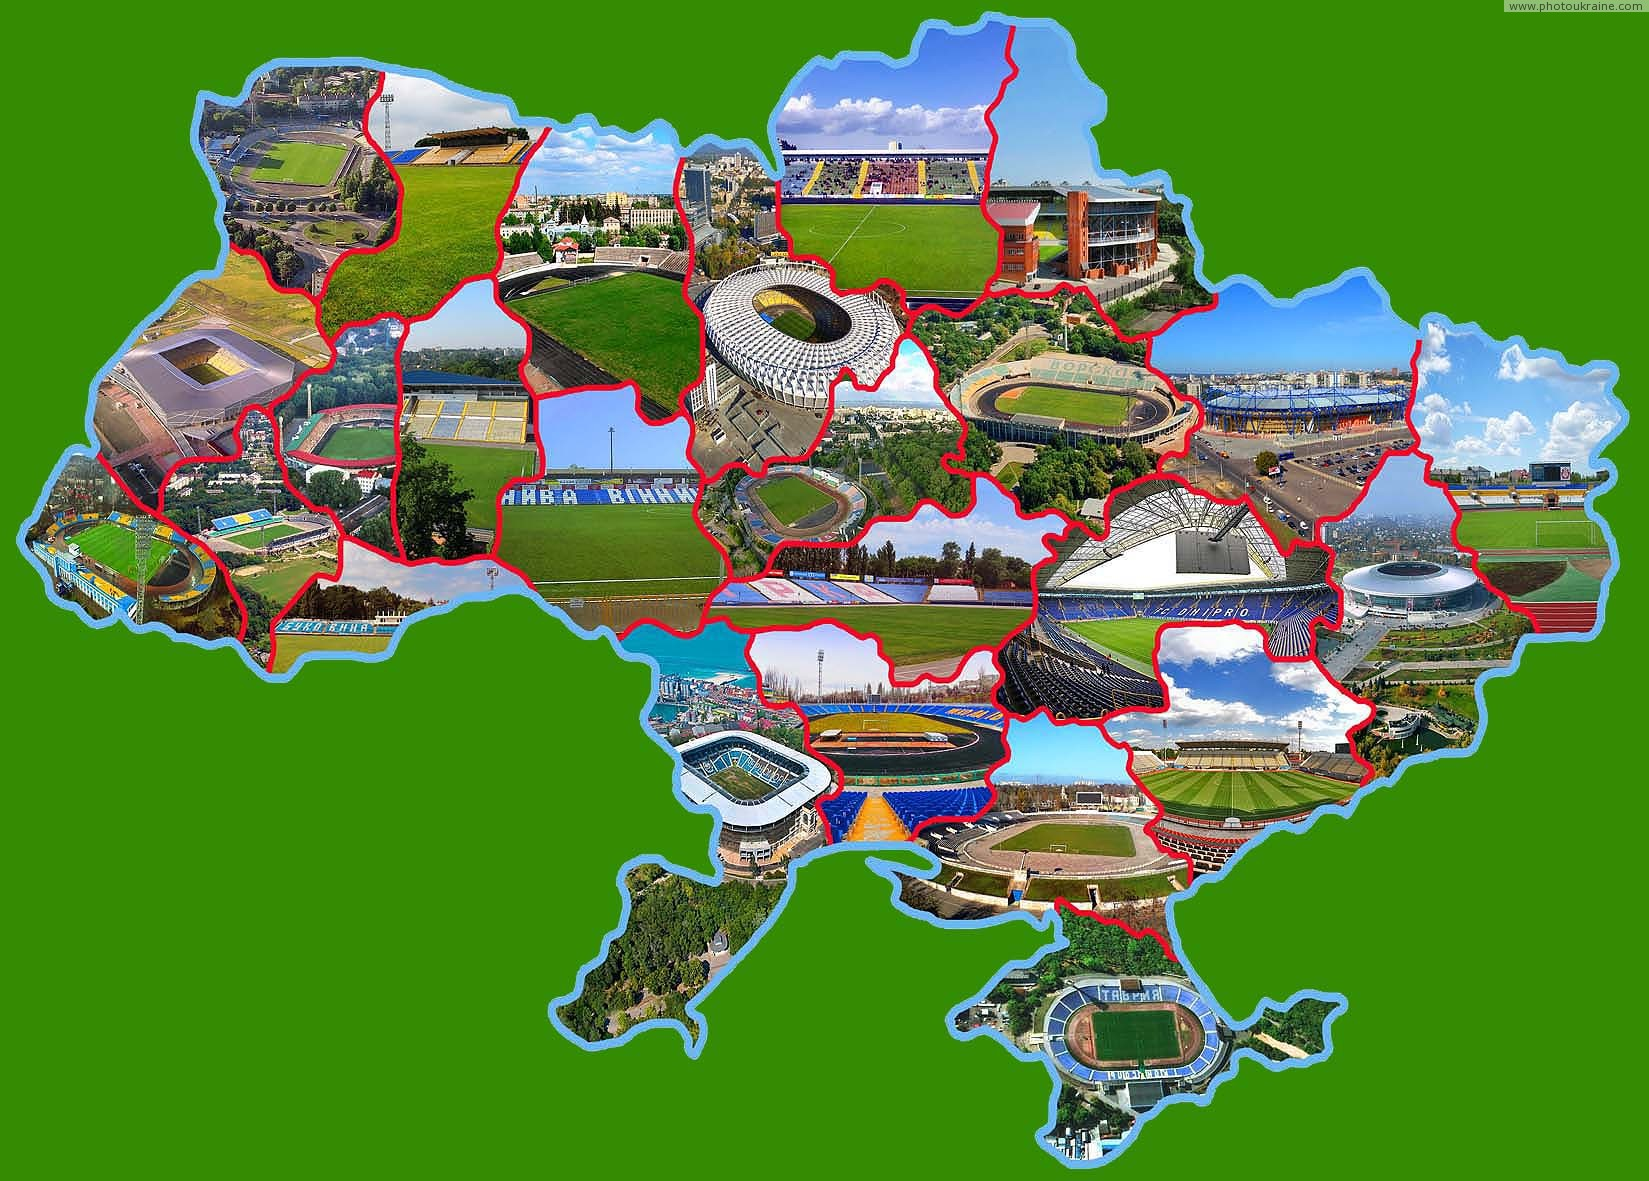 Football and track and field stadiums of Ukraine